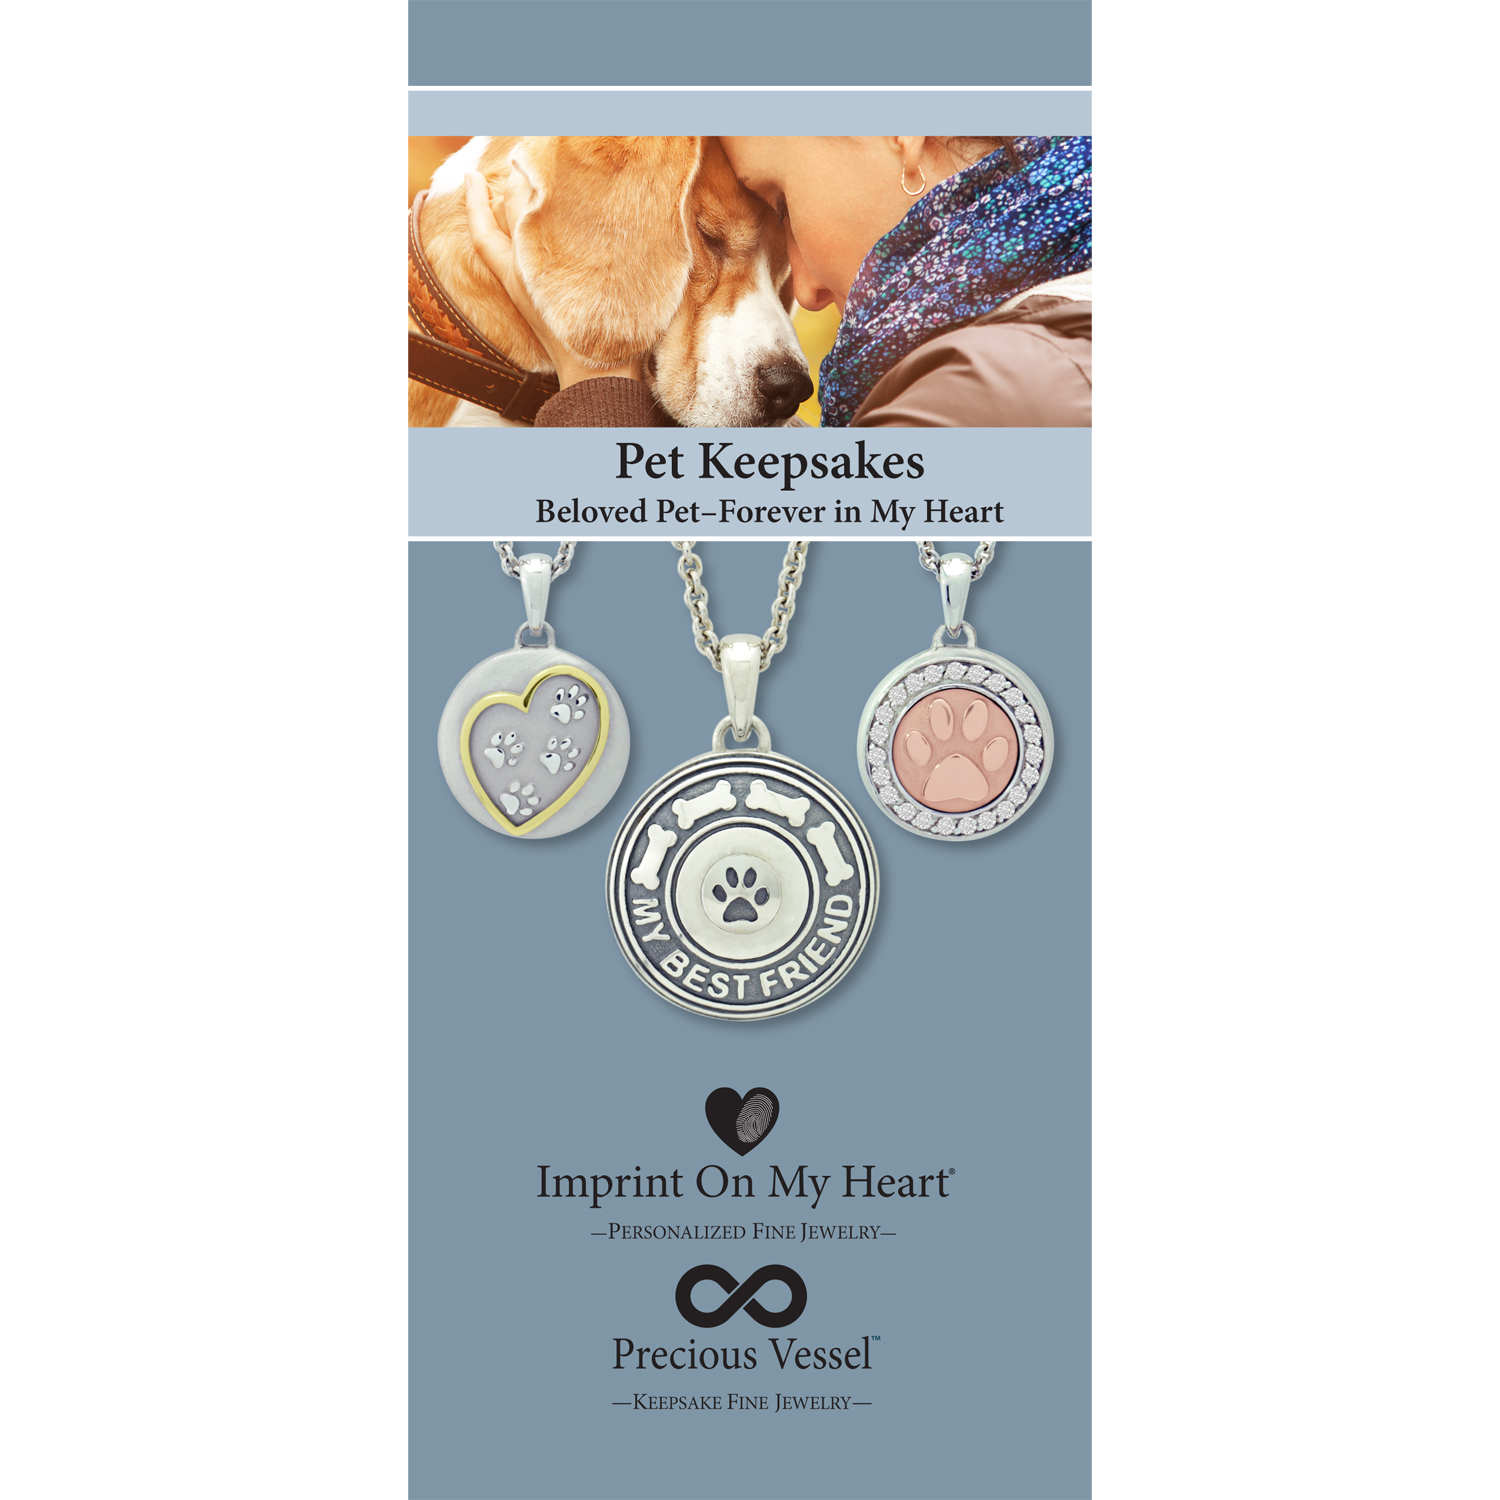 Pet Keepsake Brochure